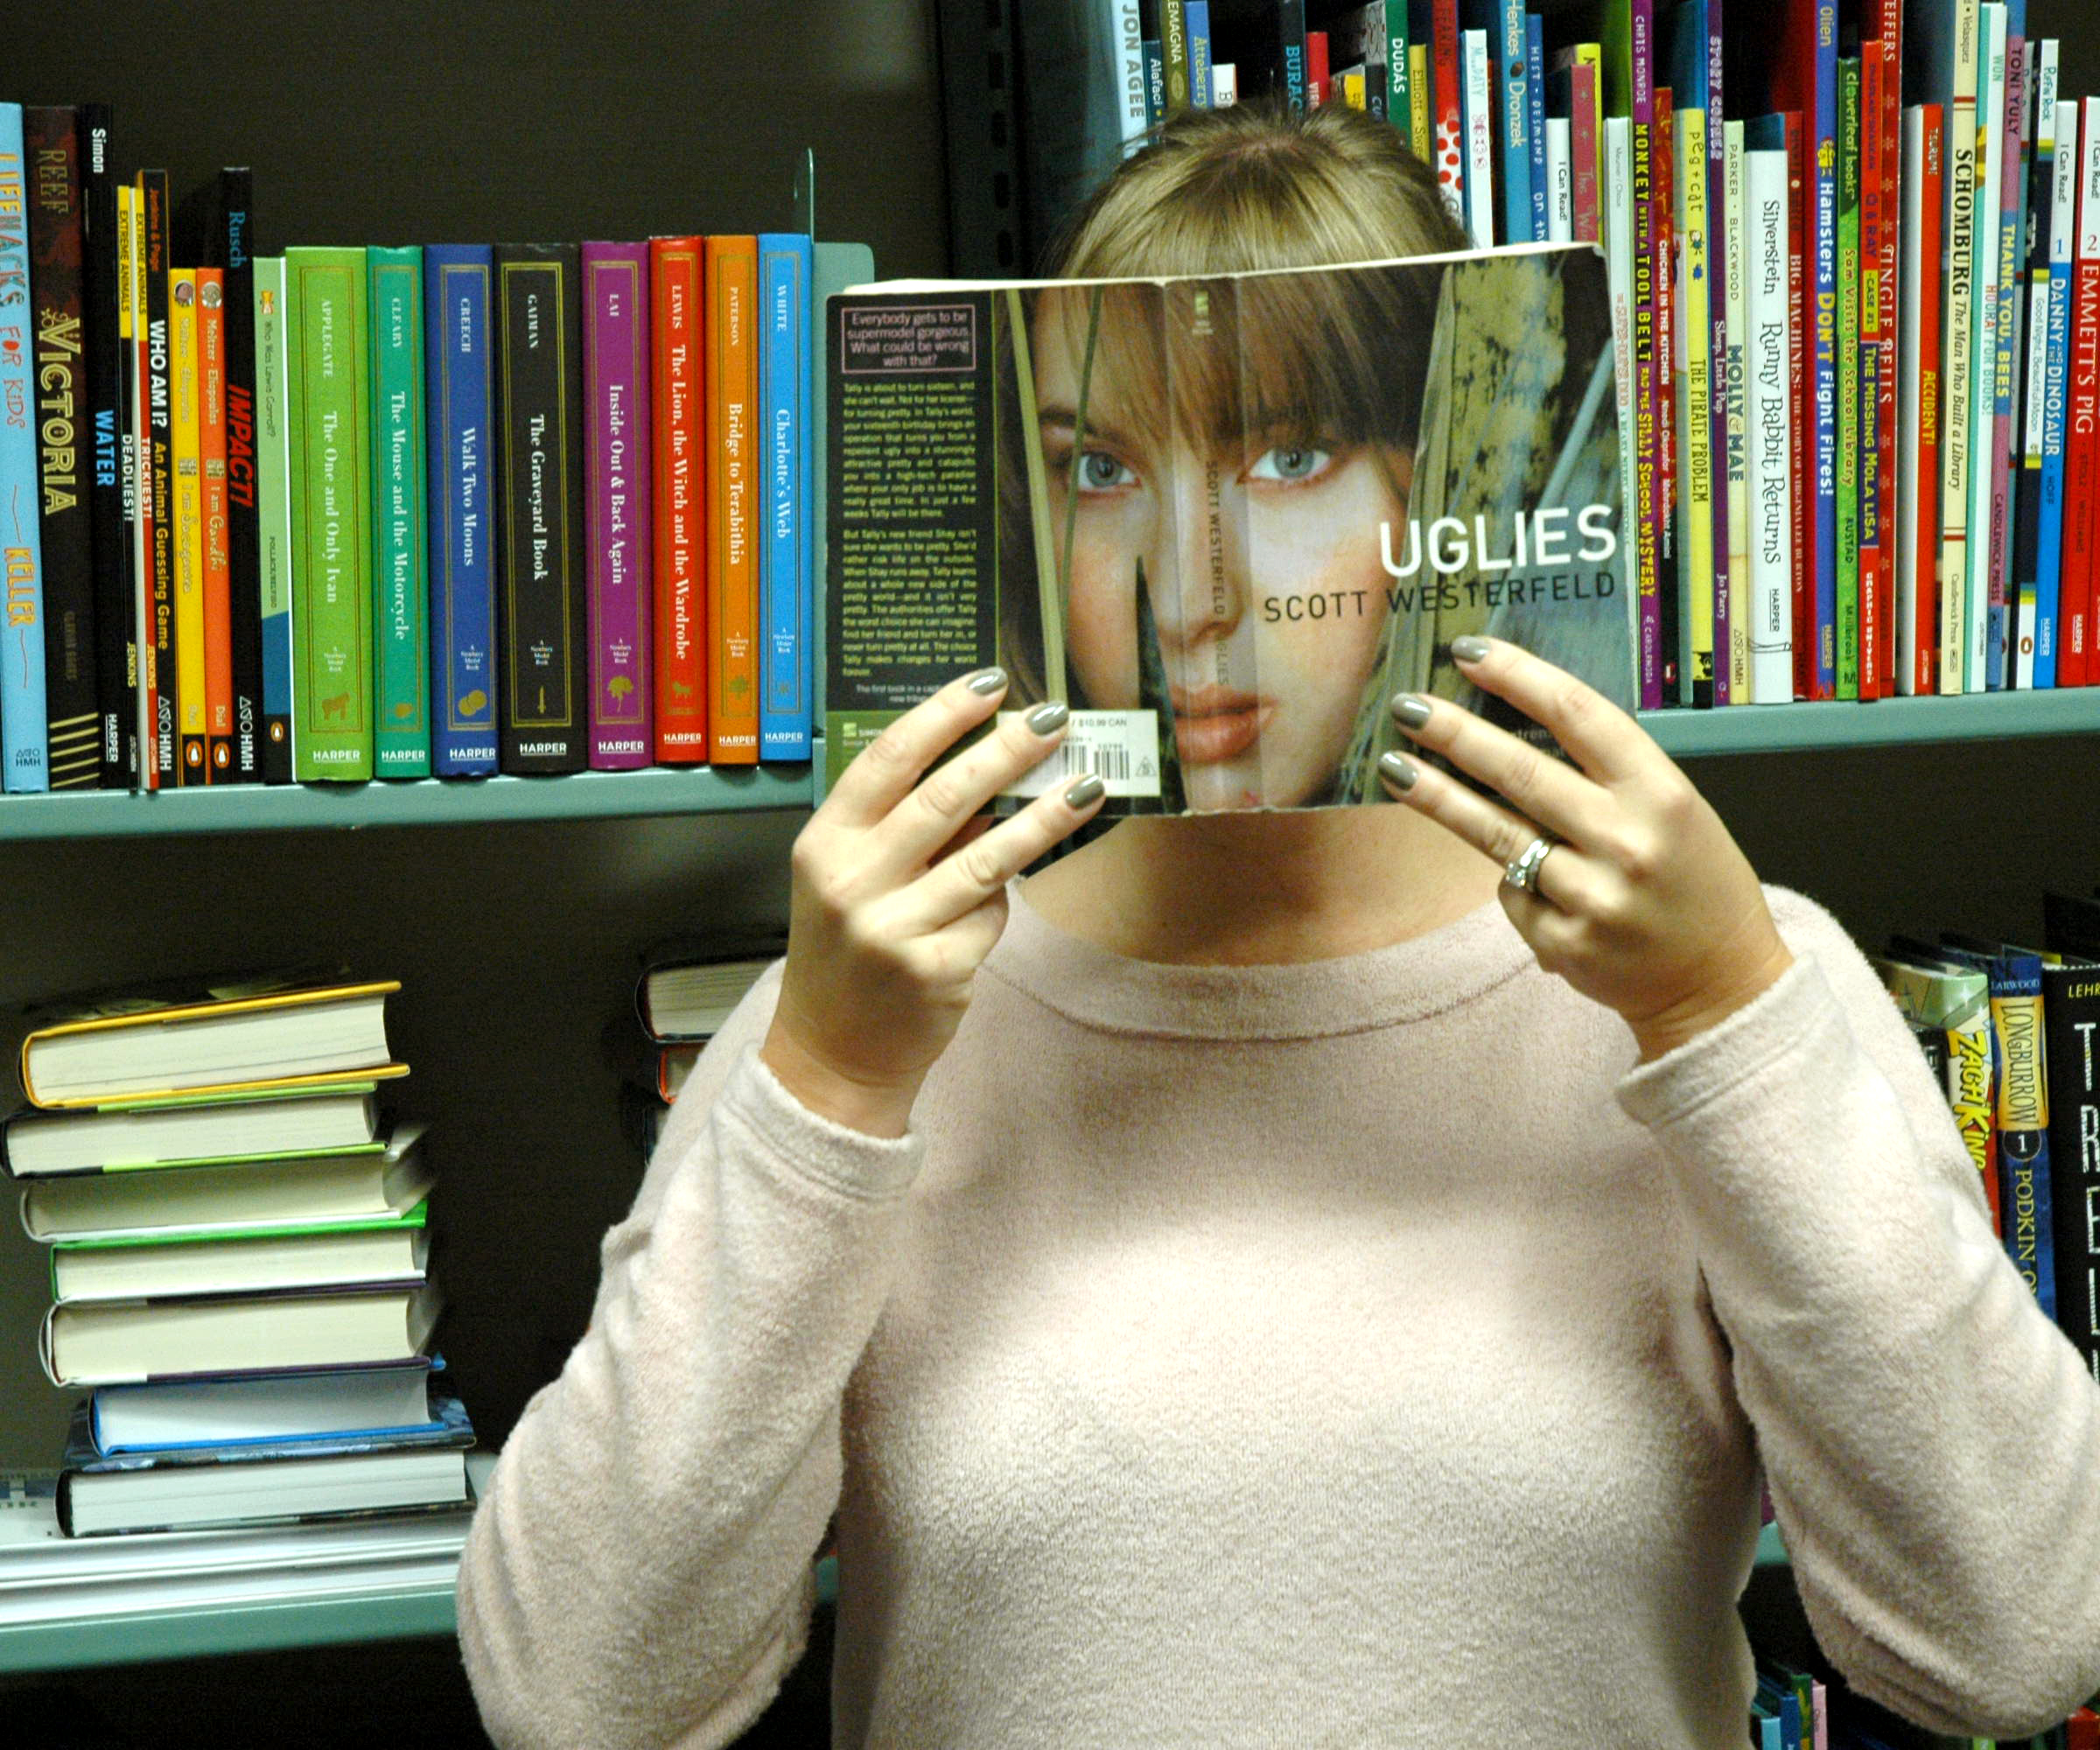 BookFace: Uglies by Scott Westerfeld